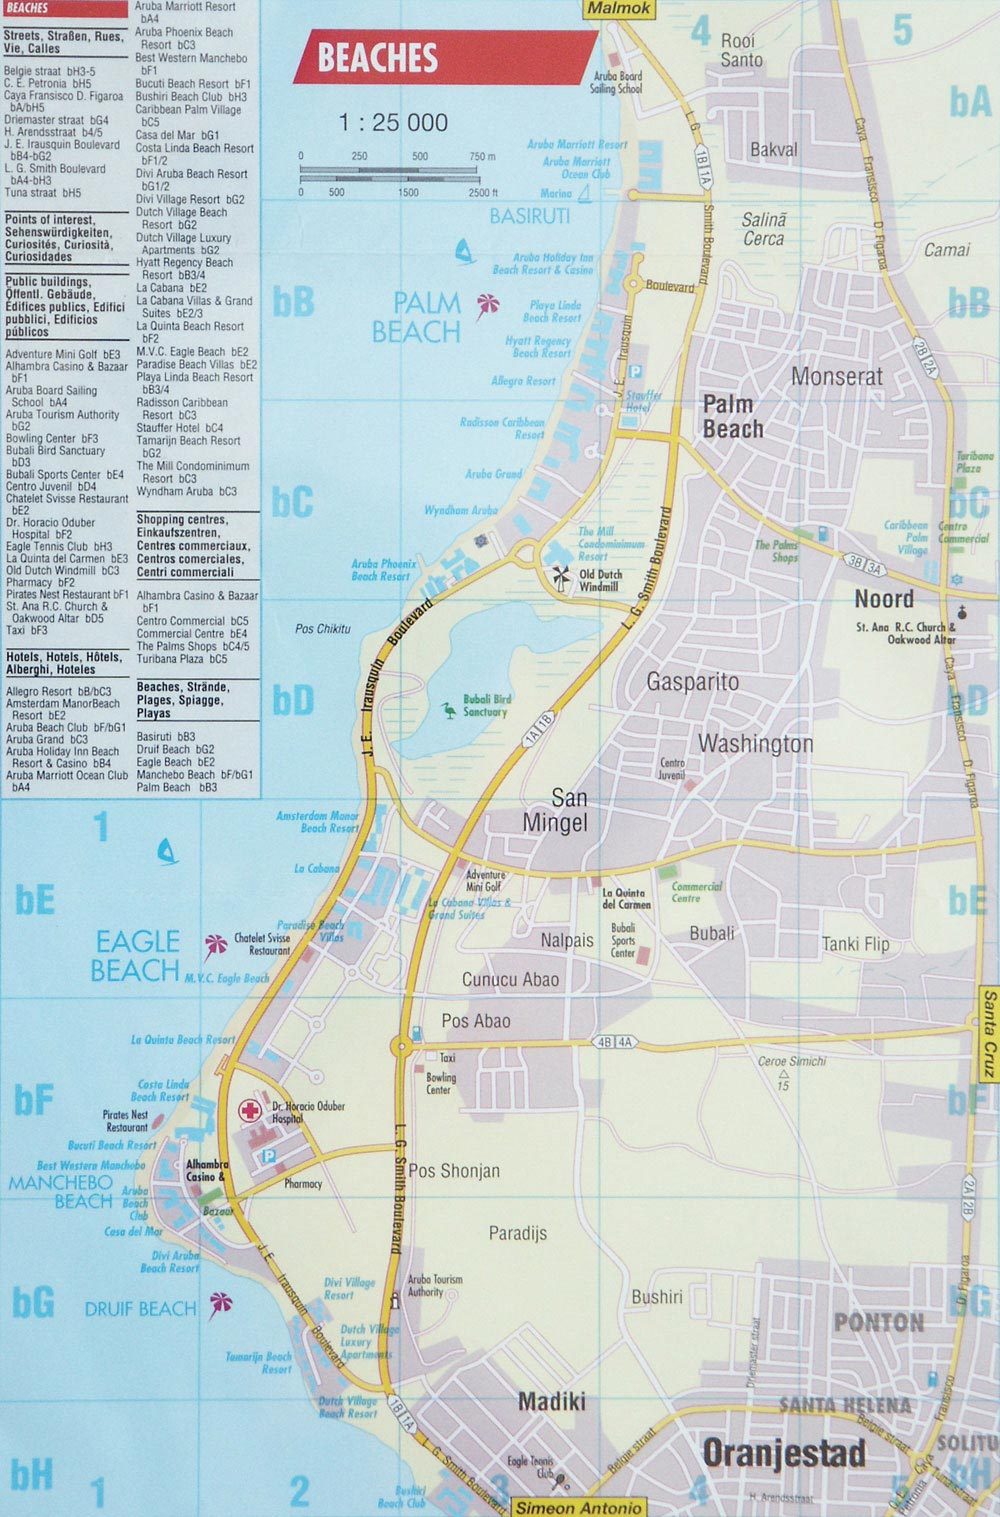 Aruba (beaches), Aruba - city or destination online map ... on map of exuma hotels, map of puerto aventuras hotels, map of downtown oranjestad, map of yosemite national park hotels, map of downtown minneapolis hotels, map of lahaina hotels, map of south beach hotels, map of curacao hotels, map of st. kitts hotels, map of kauai hotels, map of grand cayman island hotels, map of the big island hotels, map of georgia hotels, aruba luxury hotels, map of rarotonga hotels, map of panama hotels, map of california hotels, map of florida keys hotels, map of us virgin islands hotels, map of glenwood springs hotels,